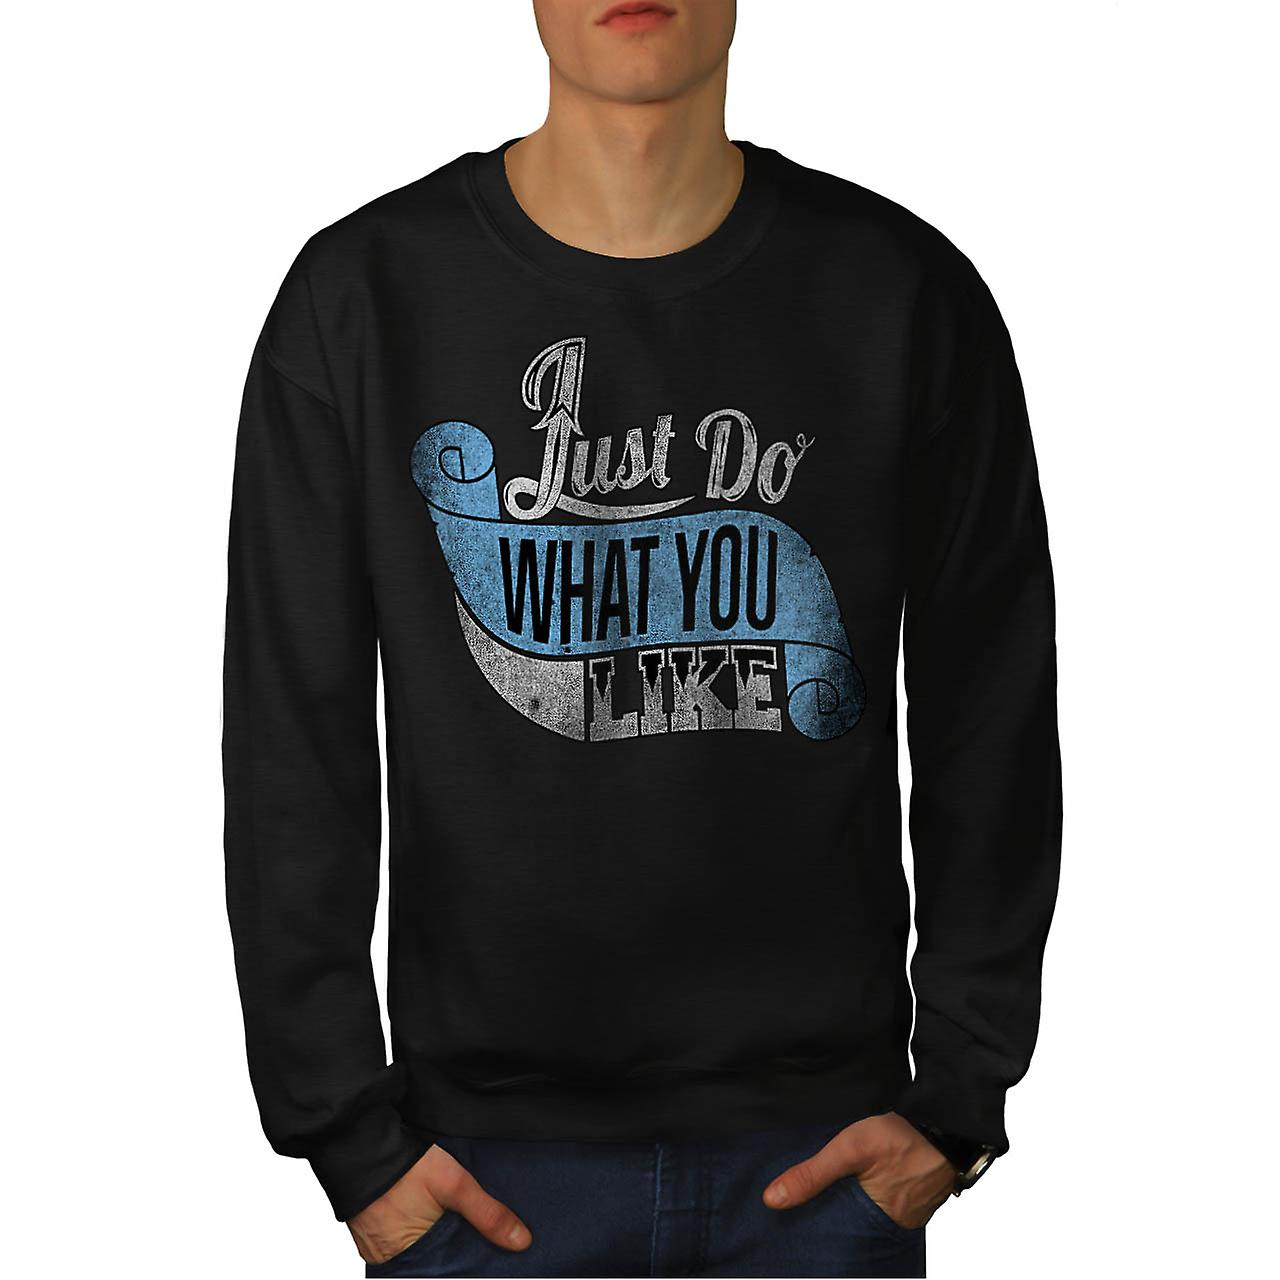 Just Do What You Like Enjoy Life Men Black Sweatshirt | Wellcoda